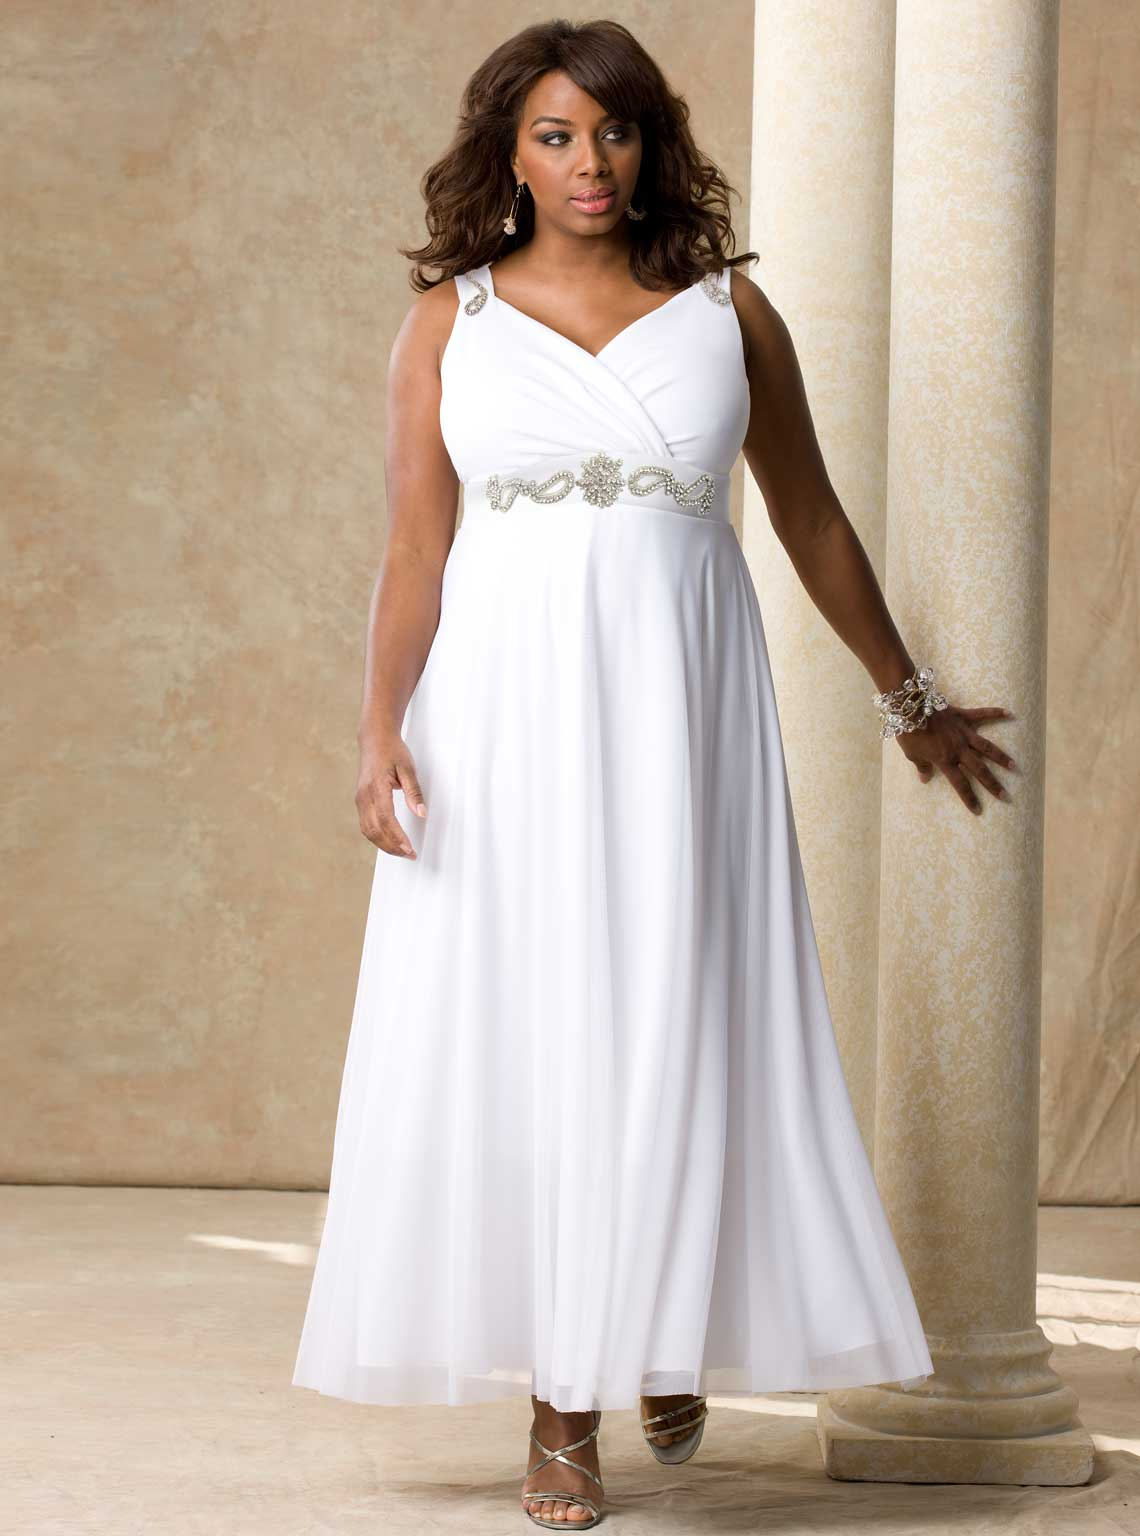 New Wedding Dresses For Full Figured Plus Size Womenhere Is This Wedding